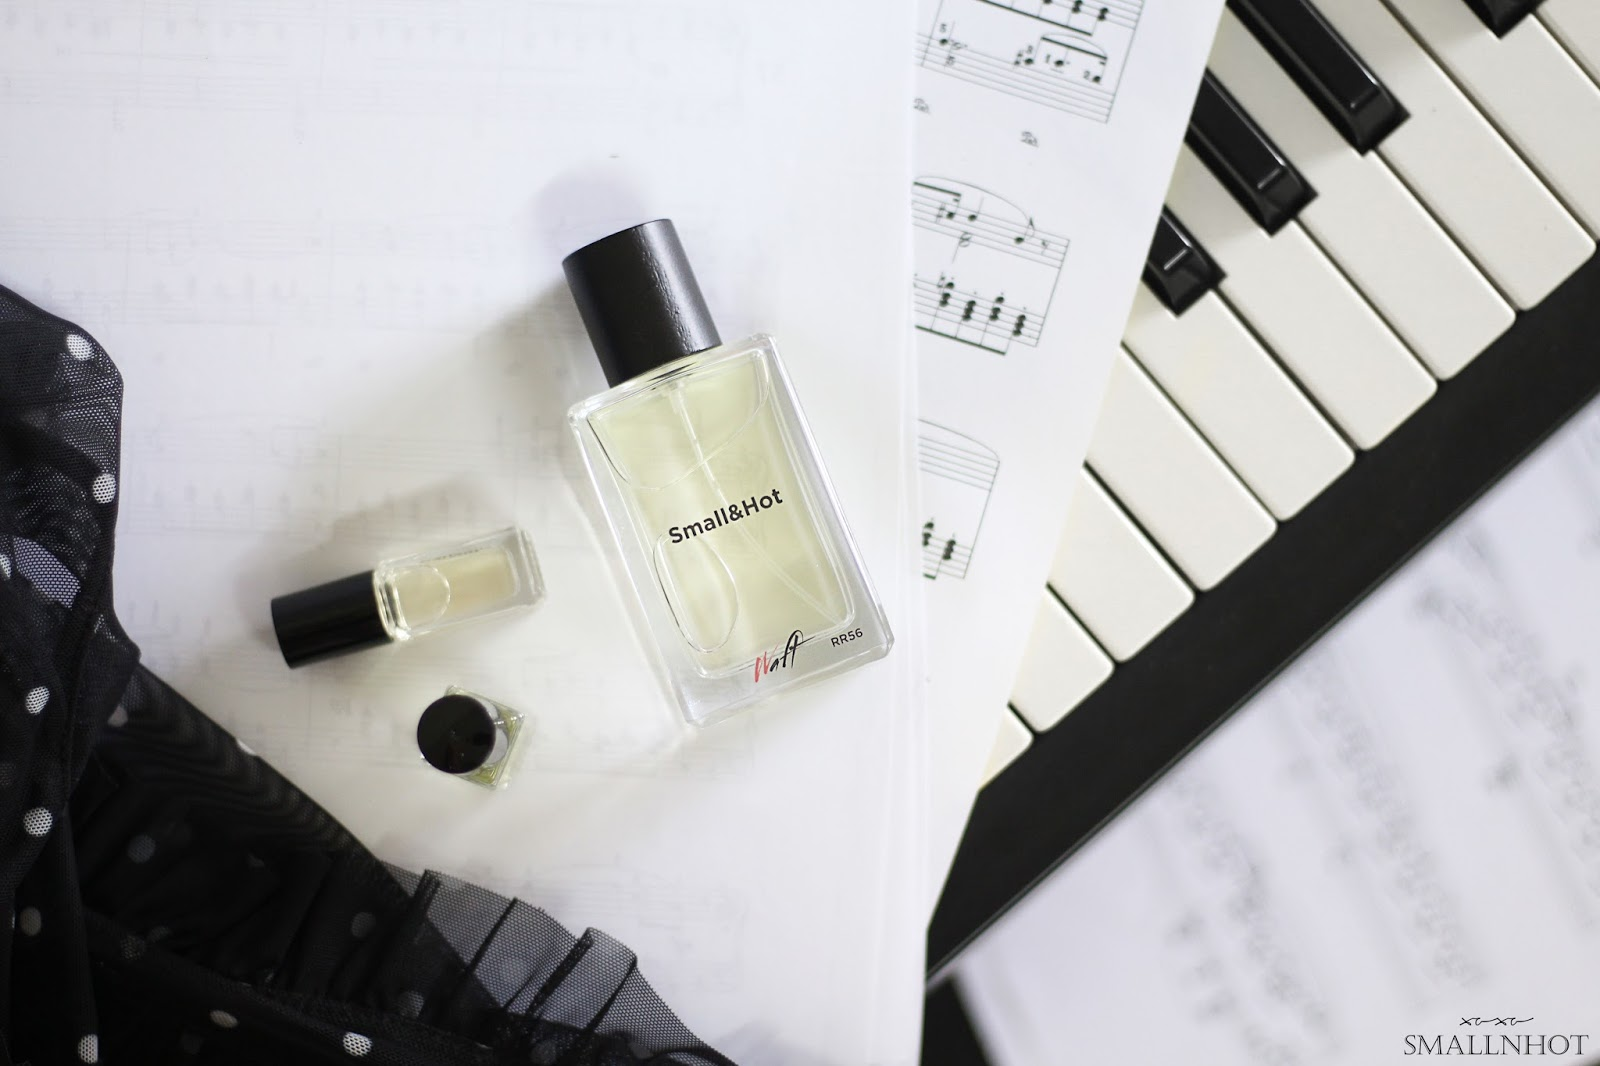 Waft Perfume - Your very own Personalized Fragrance - Small